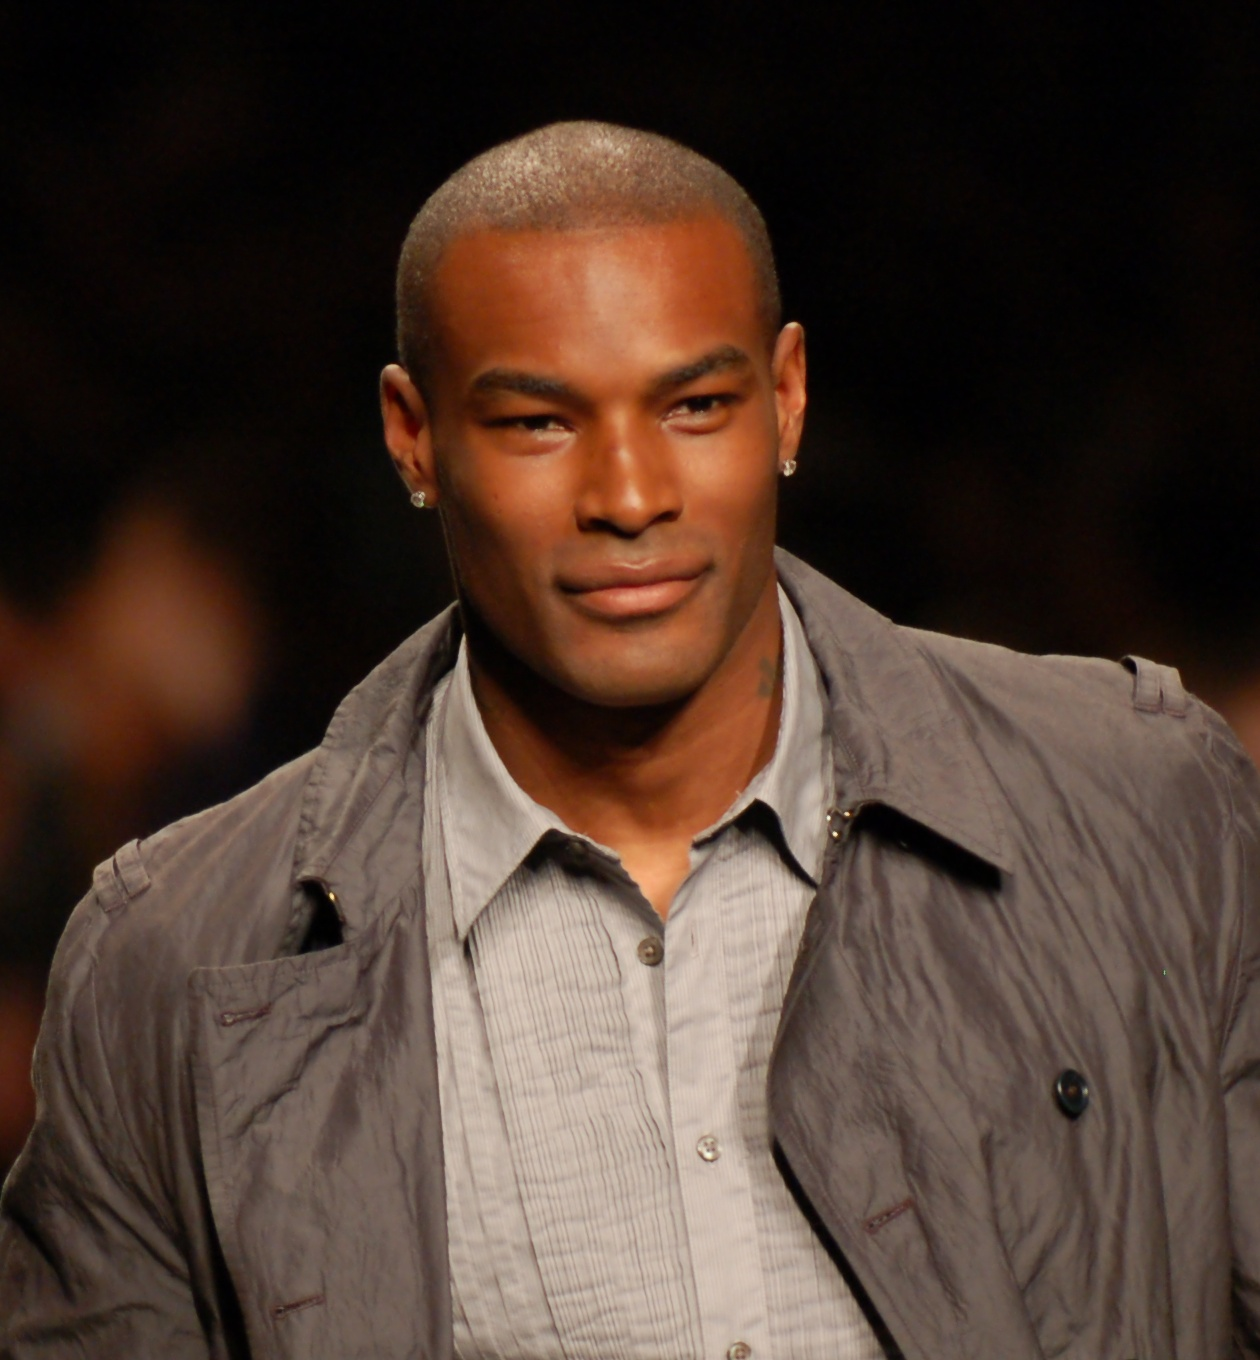 Tyson Beckford Wikipedia The Free Encyclopedia